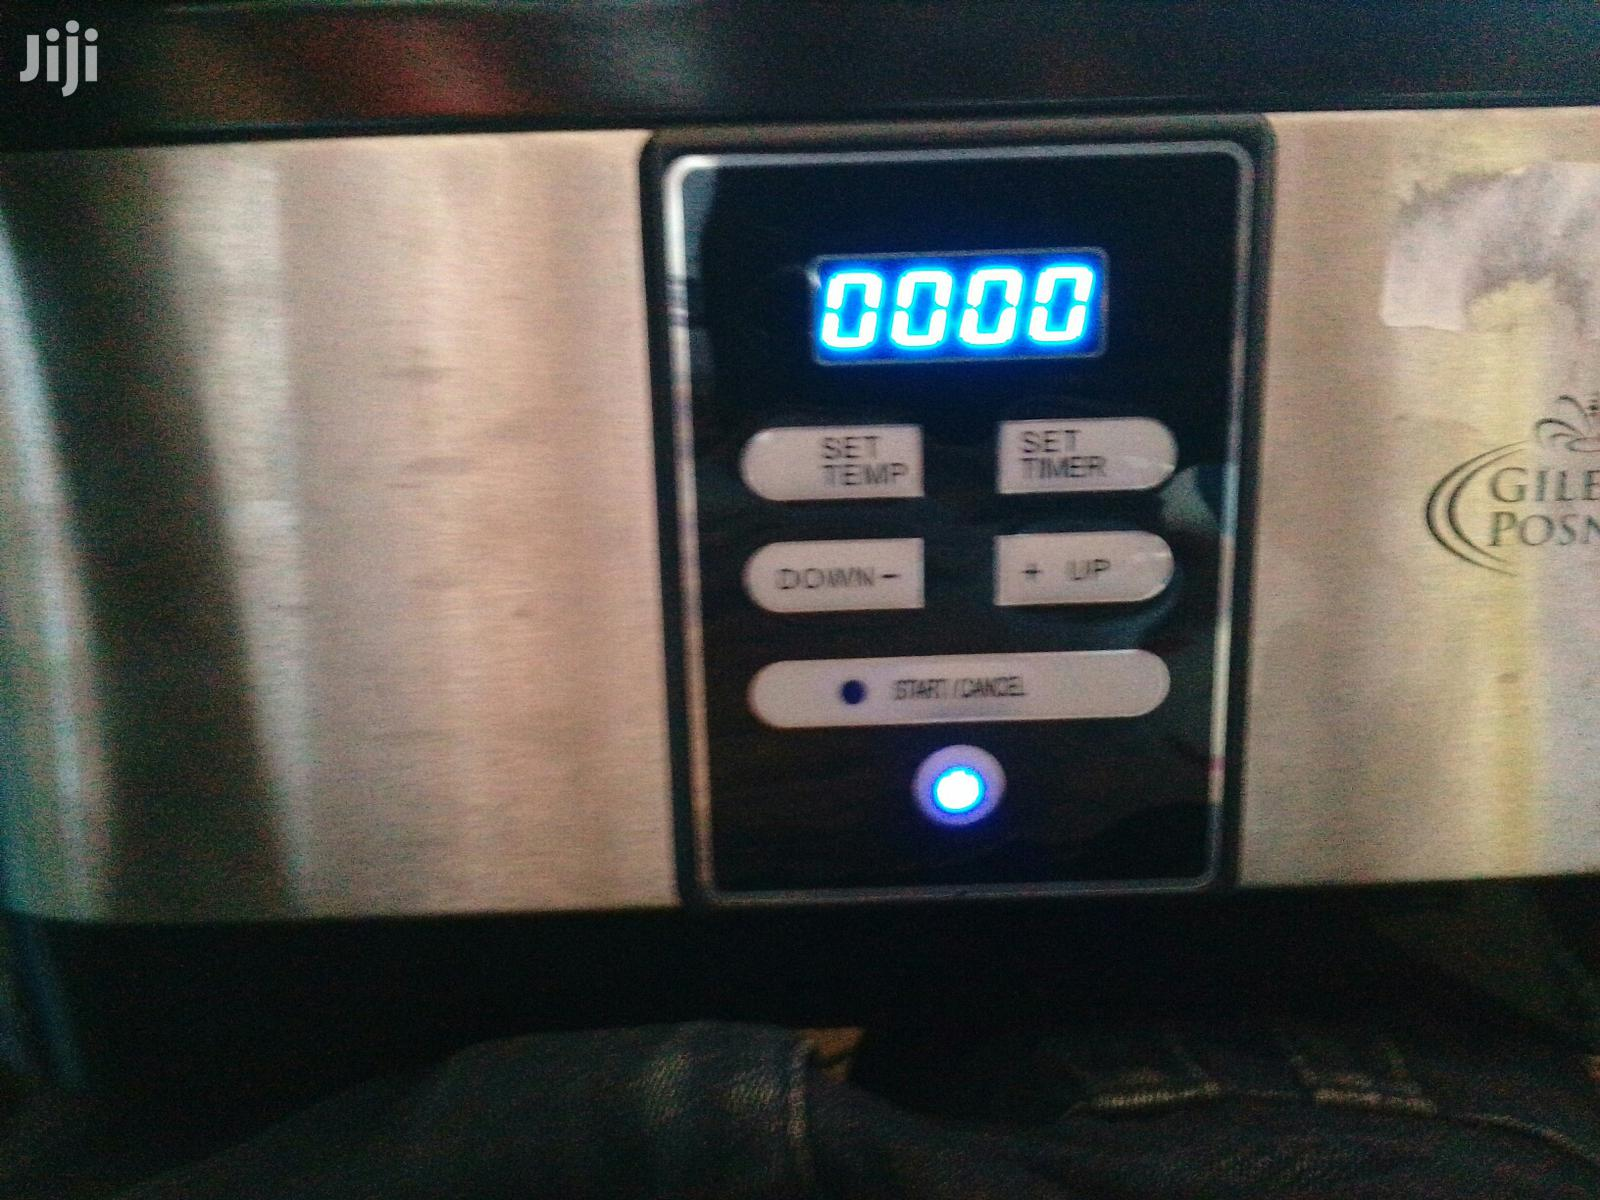 UK Used Giles And Posner Sous Vide And Slow Cooker | Kitchen Appliances for sale in Kampala, Central Region, Uganda